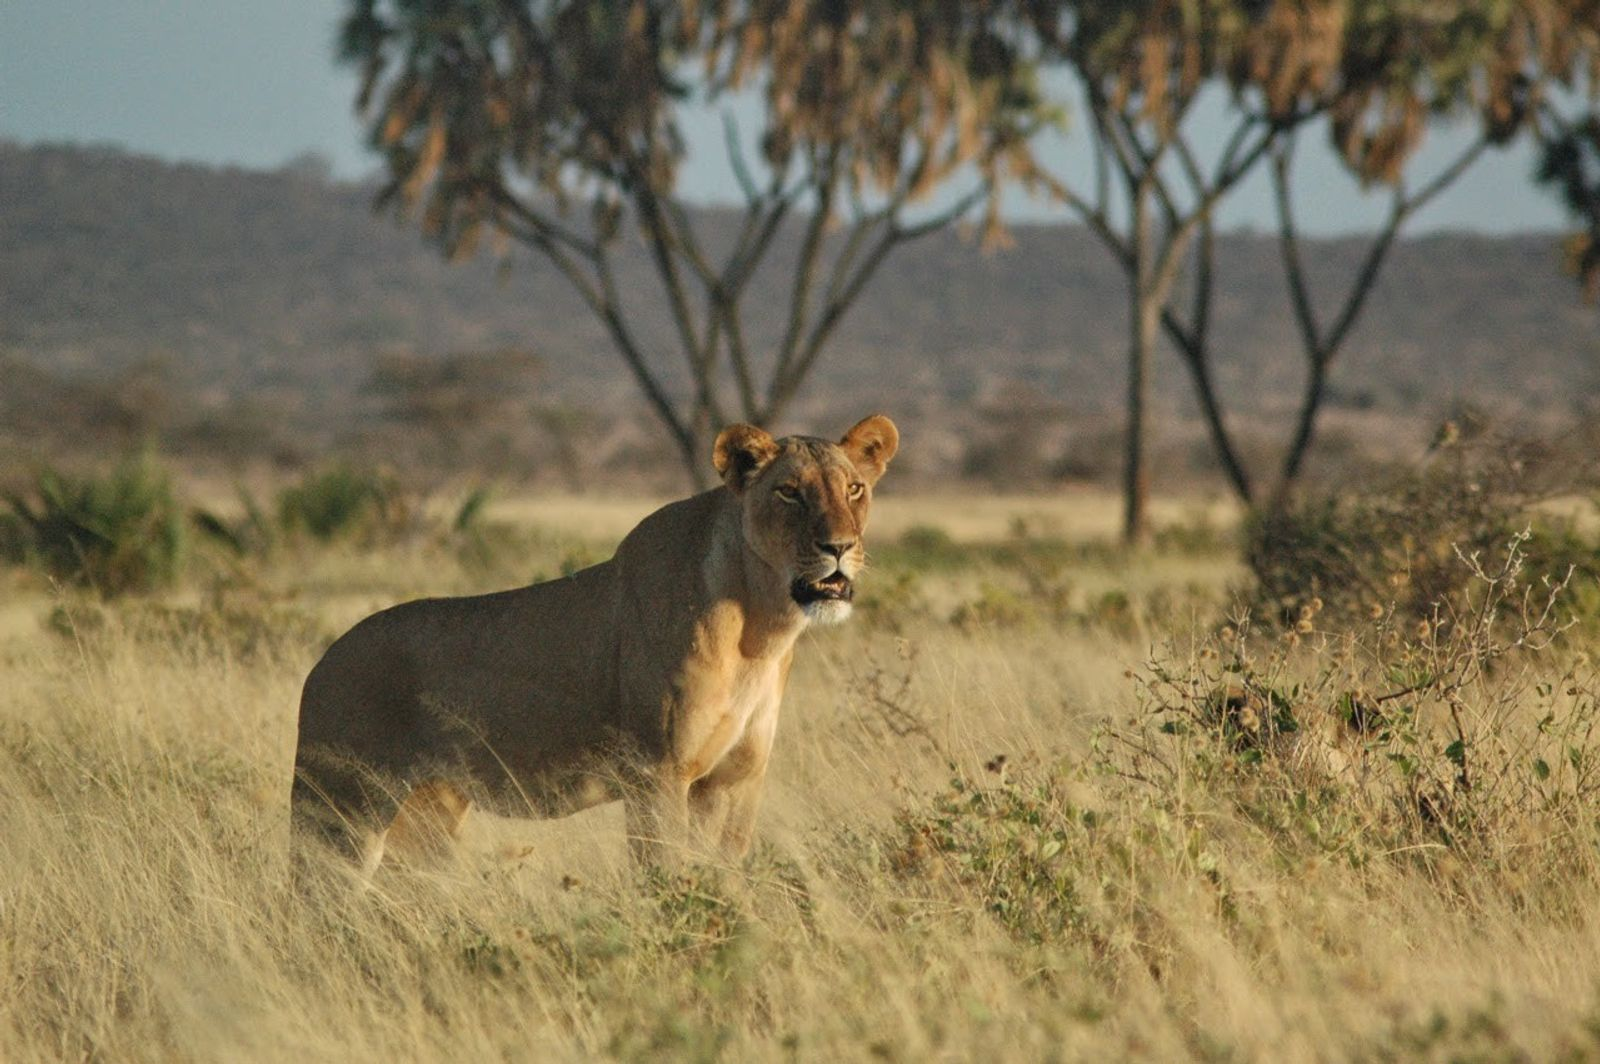 A lion in the Samburu National Reserve, Kenya.